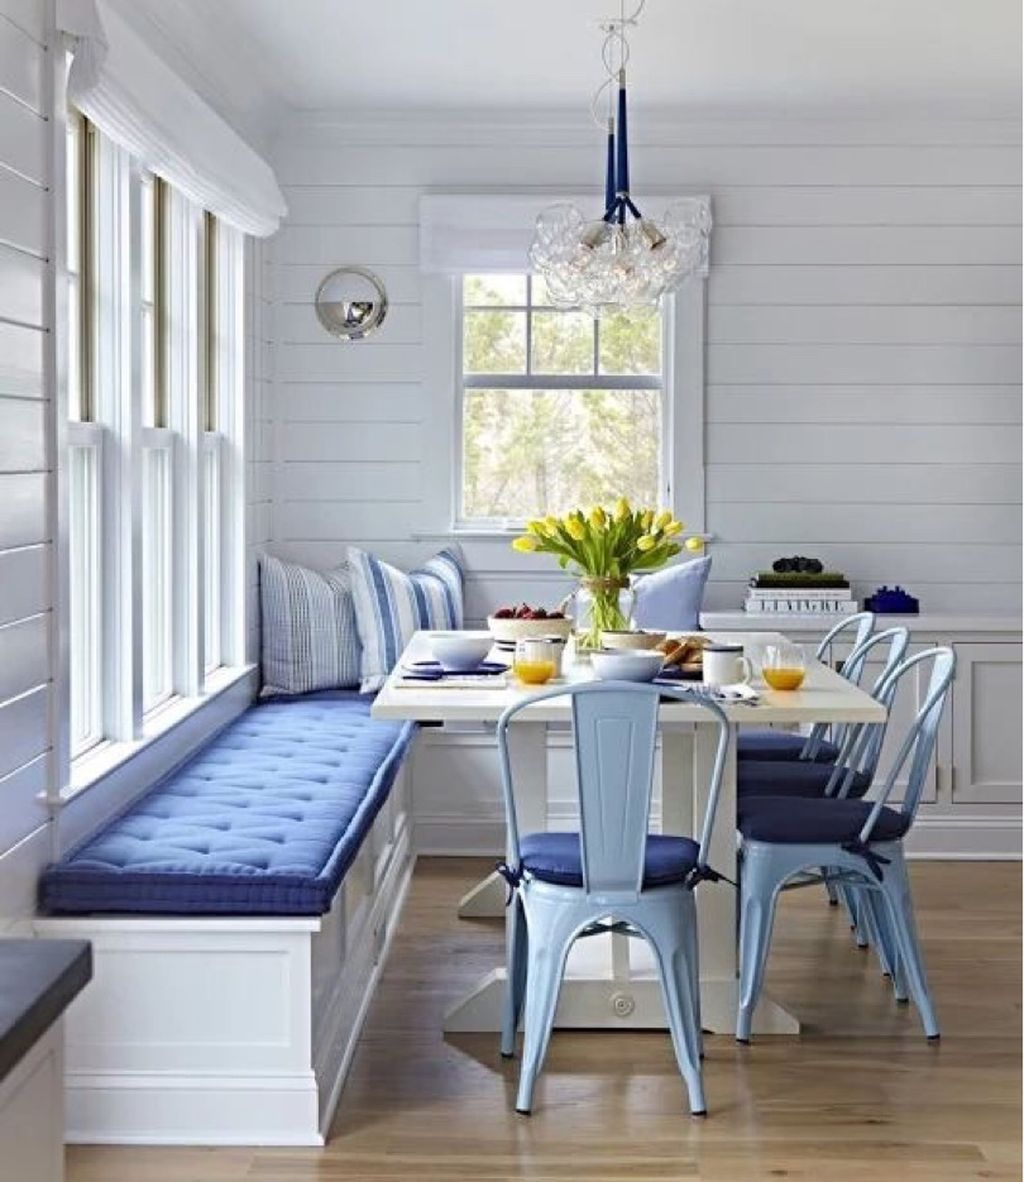 Cozy Farmhouse Banquette Seating In Kitchen Ideas 44 Dining